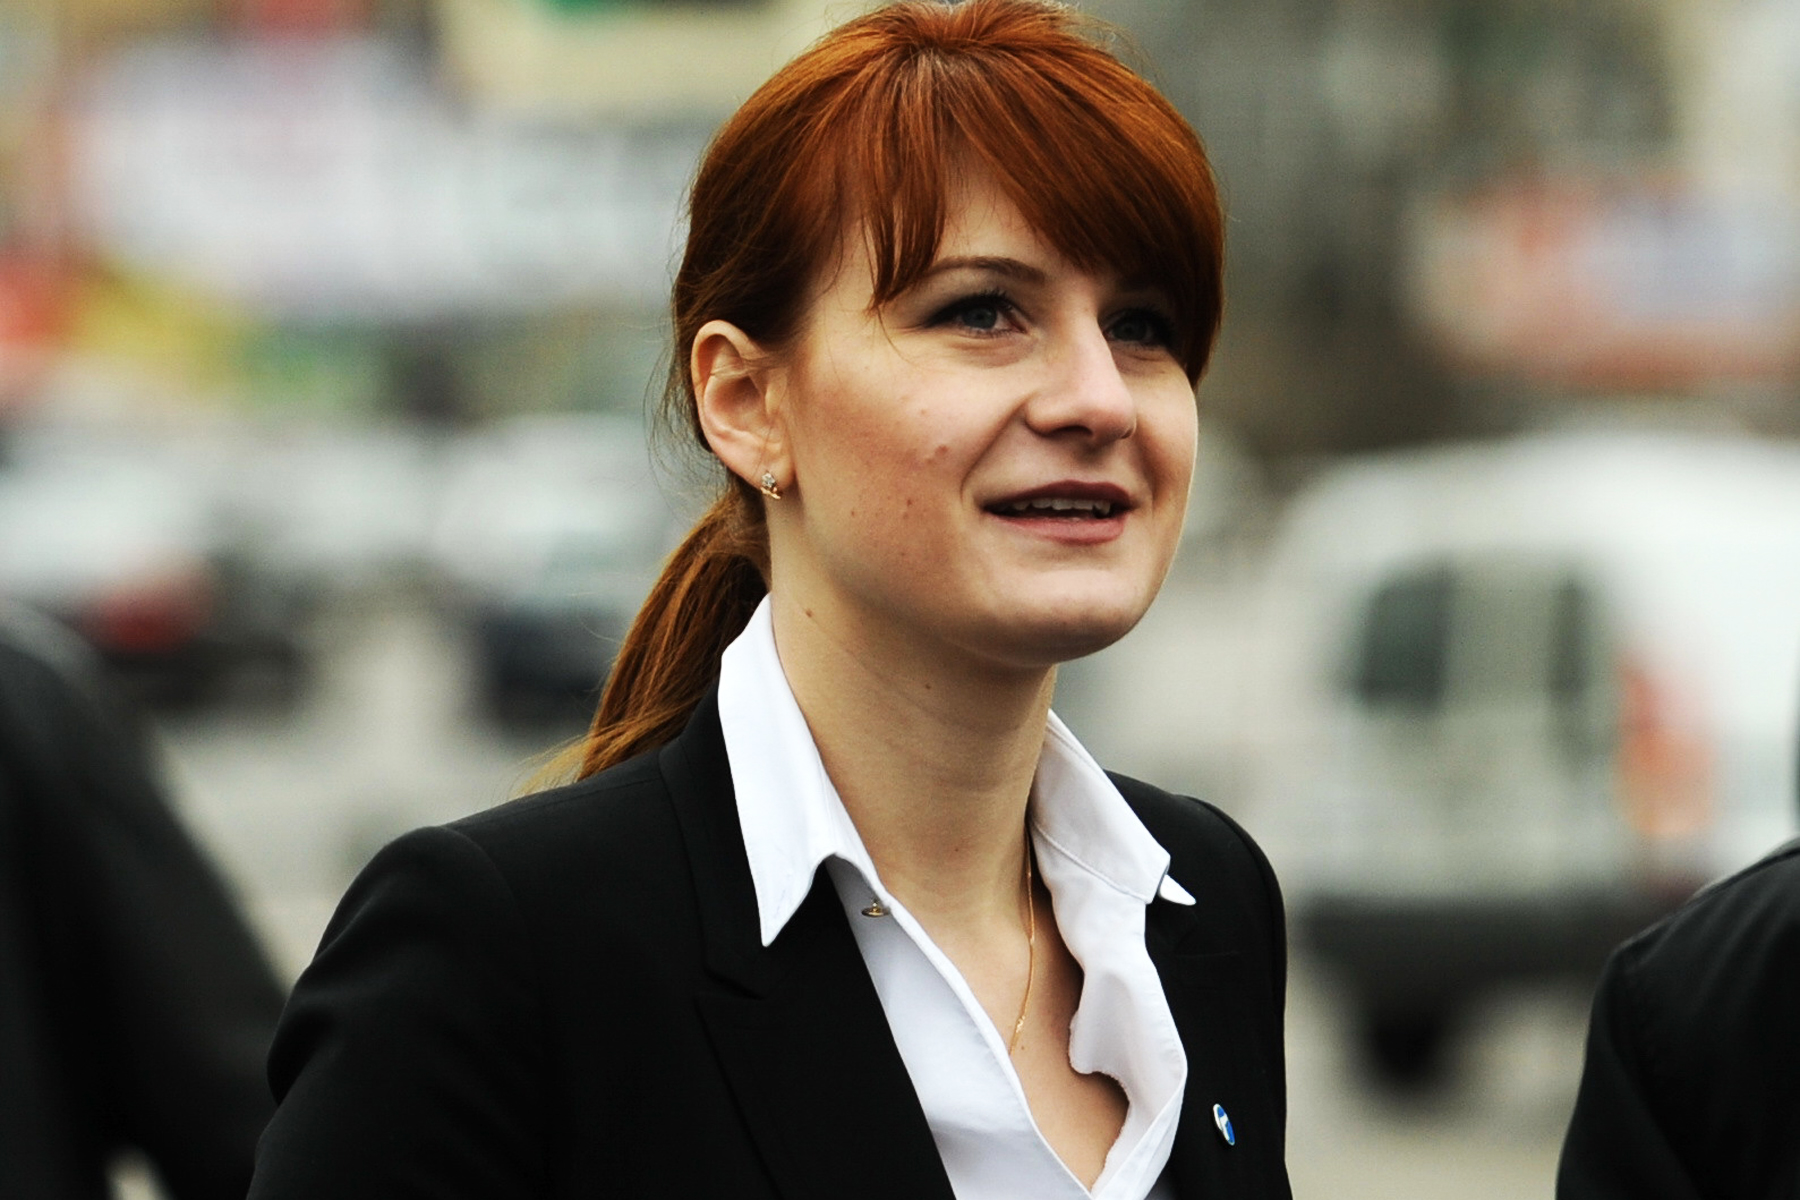 Maria Butina, pictured April 23, 2013 in Moscow.